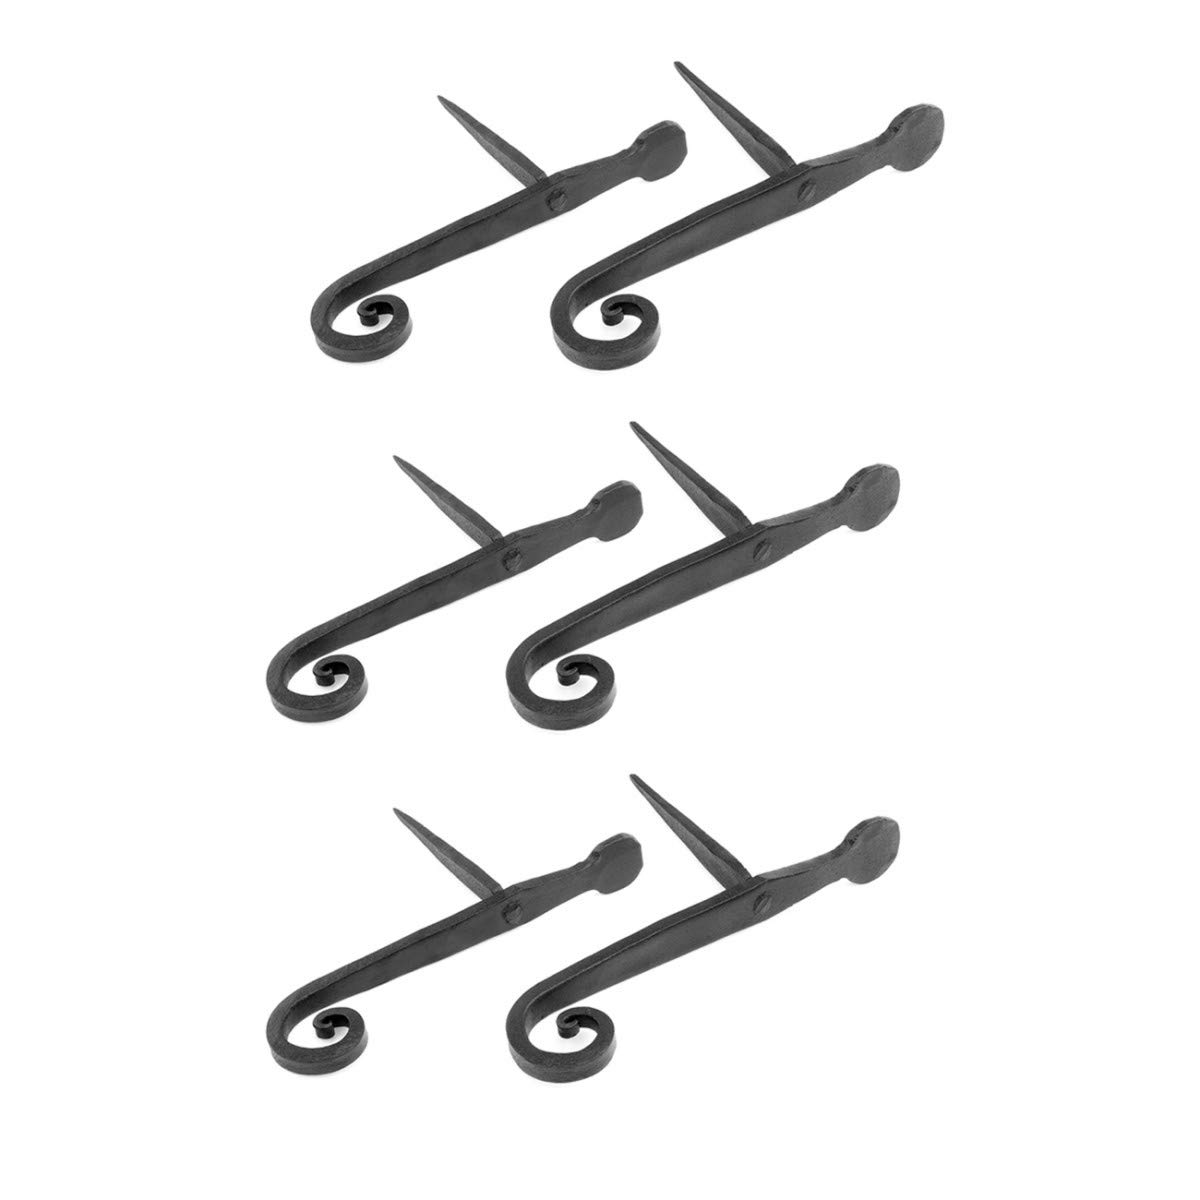 3 Pairs Of Shutter Dogs Black Wrought Iron (6 Pieces Total) by Renovators Supply Manufacturing